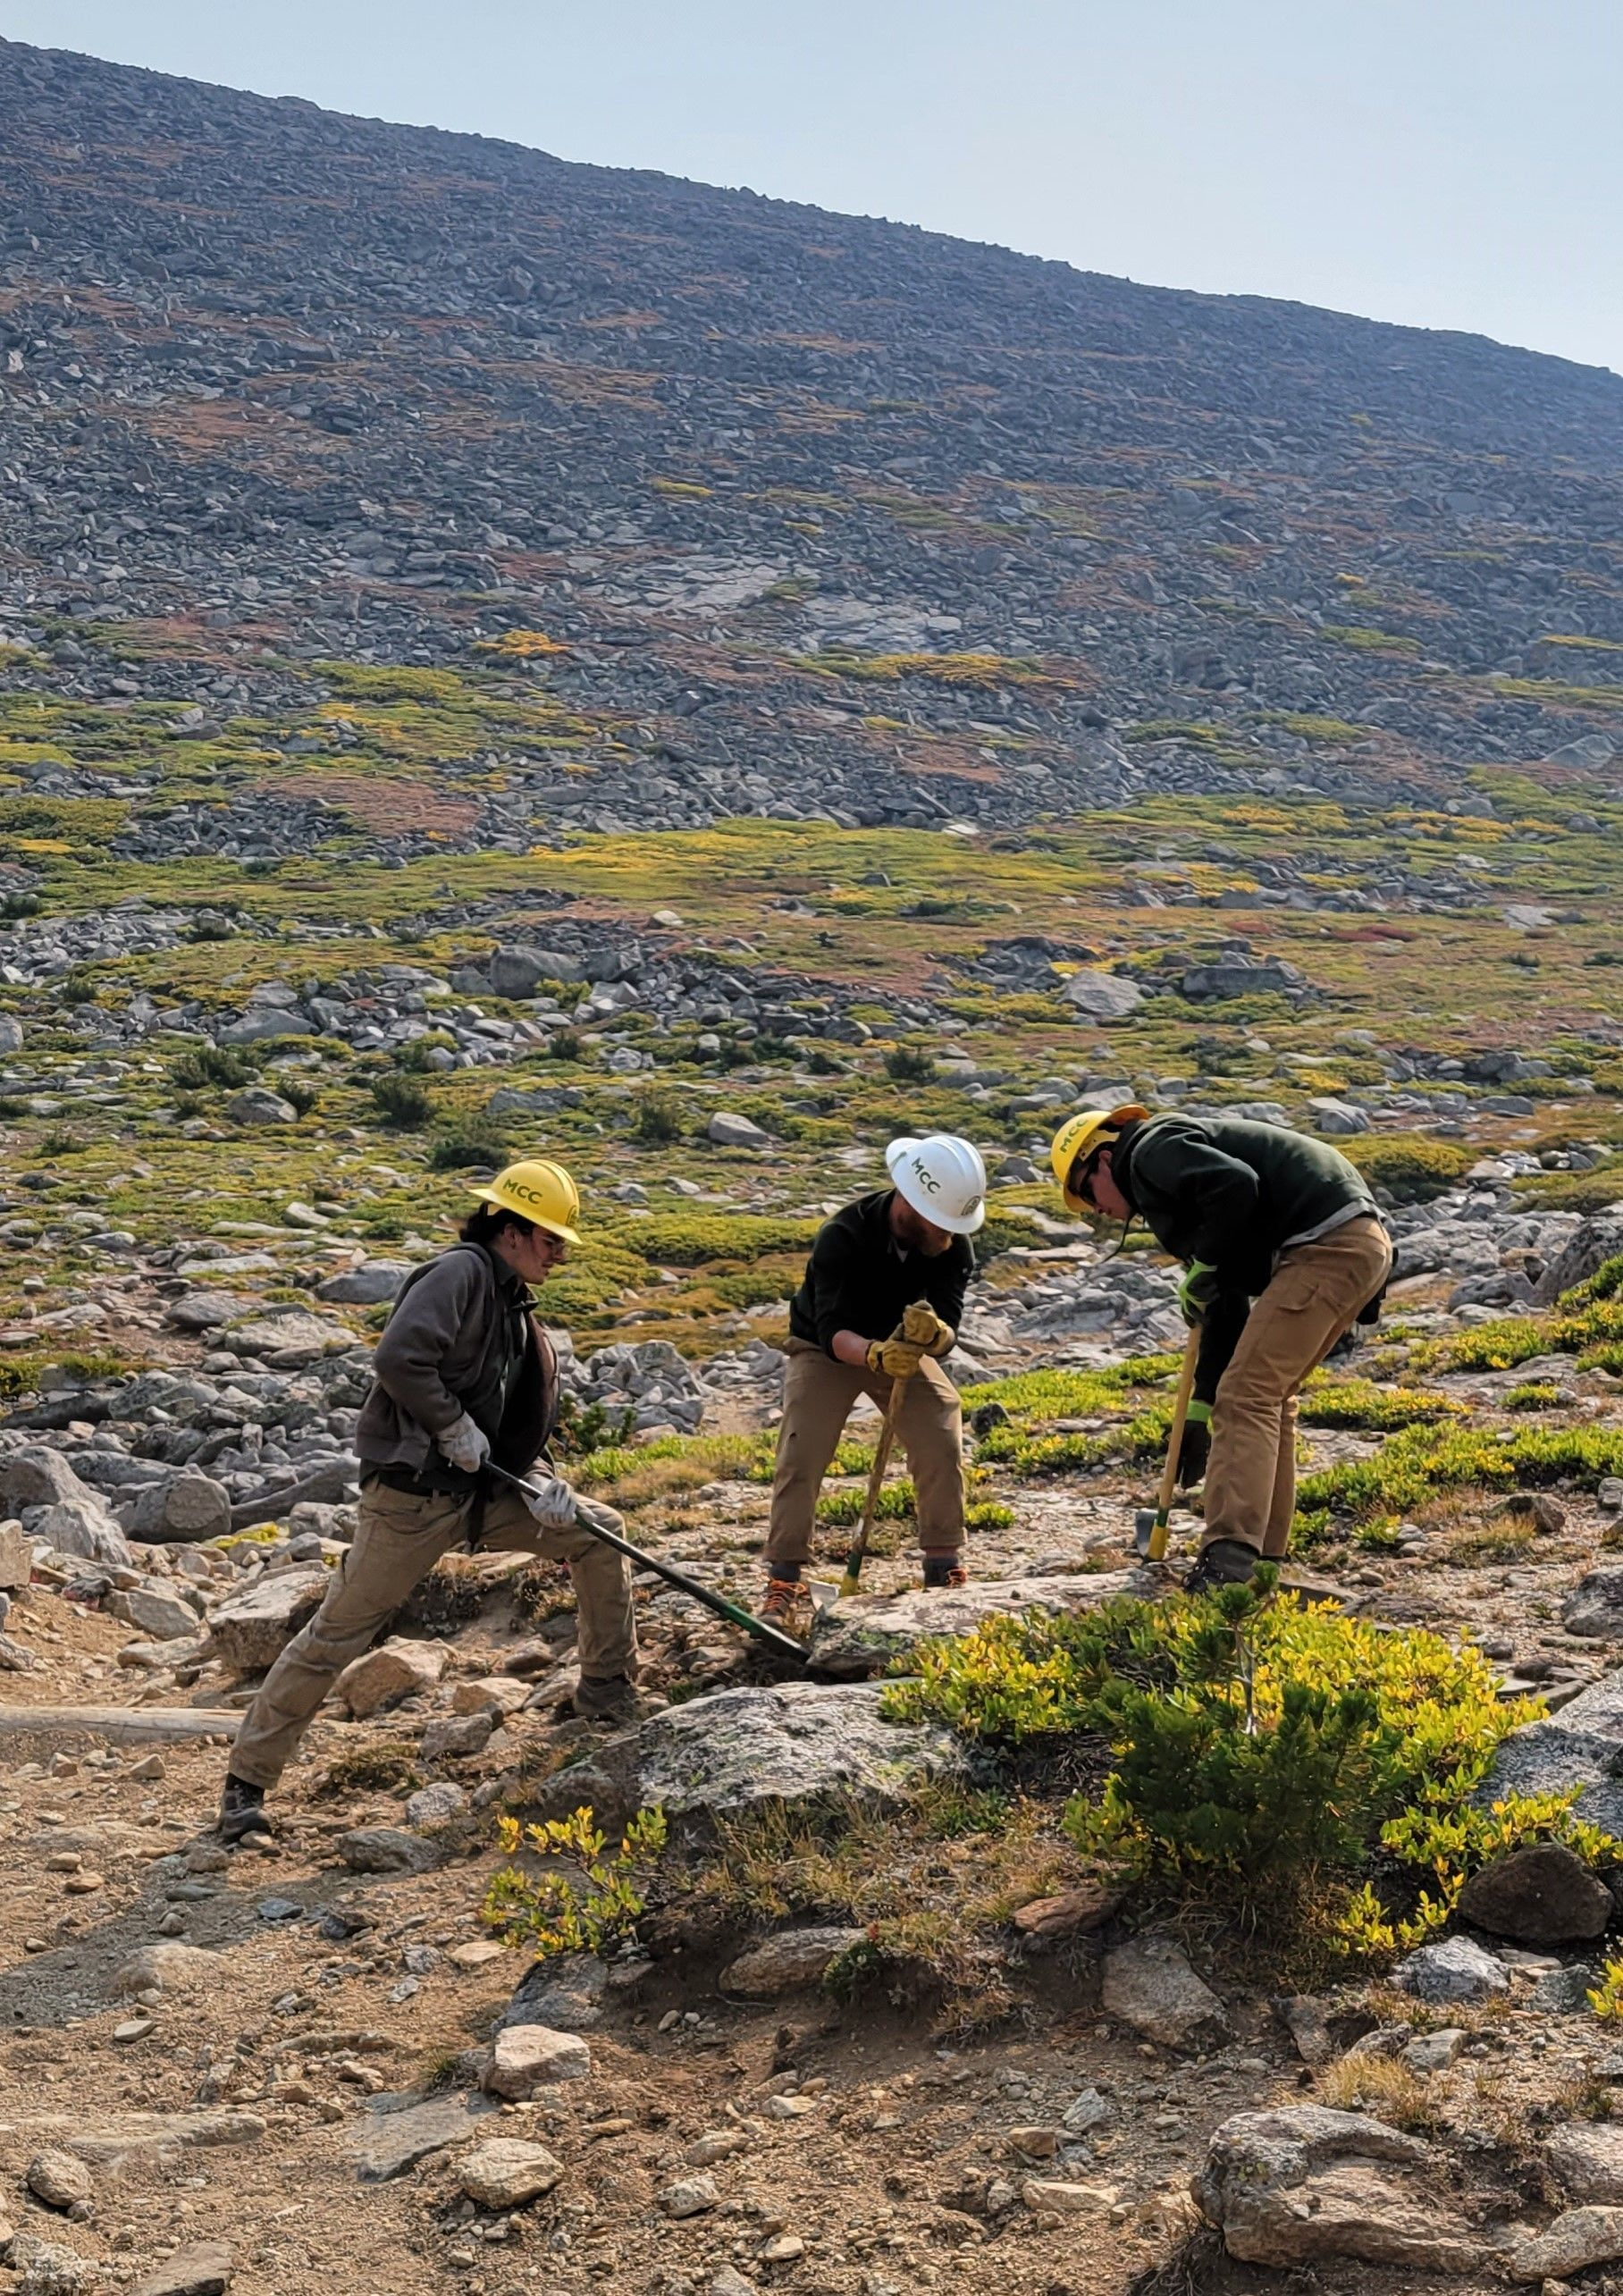 A crew works on a trail to remove blasted rock